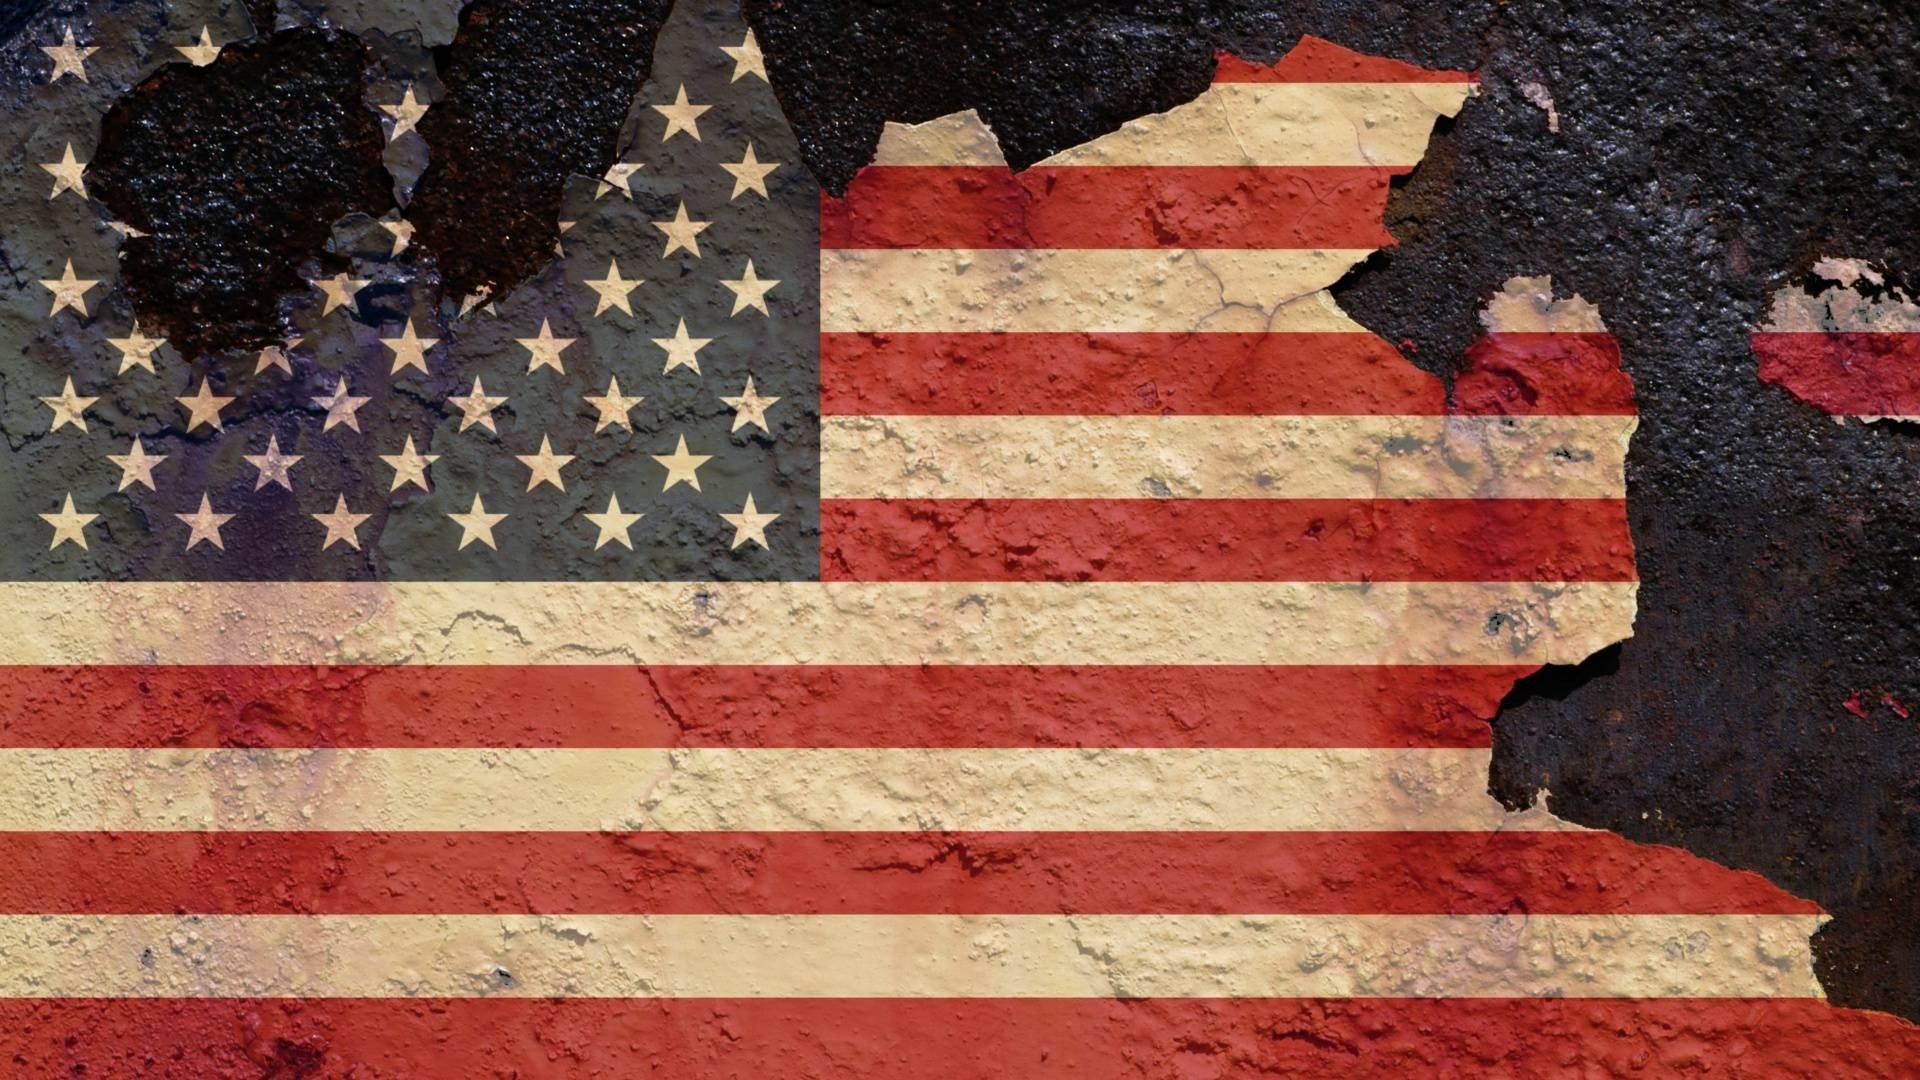 Res: 1920x1080, Title : american flag wallpapers – wallpaper cave. Dimension : 1920 x 1080.  File Type : JPG/JPEG